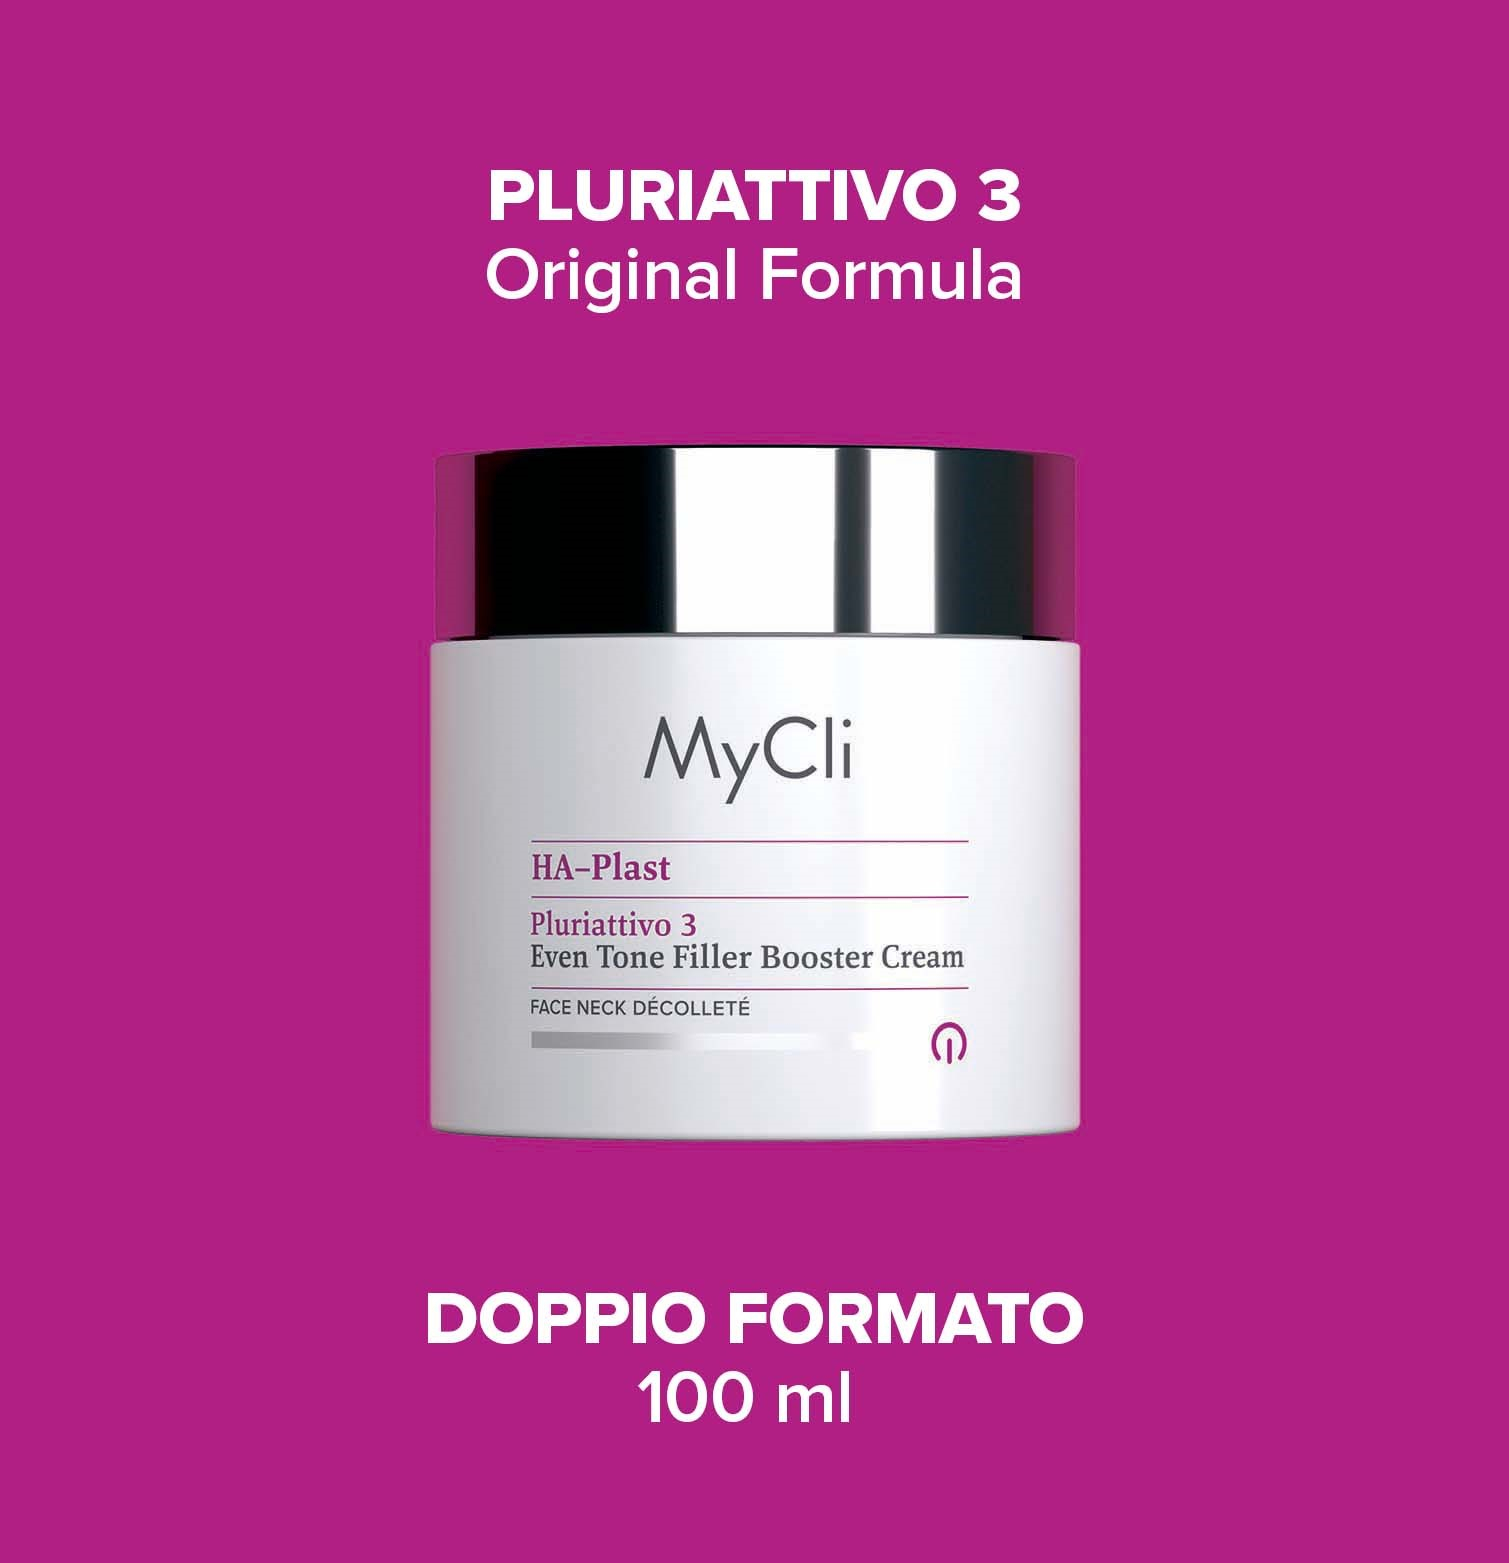 HA-Plast Pluriattivo 3 Crema Filler Booster Uniformante 100 ml - VISO COLLO DÉCOLLETÉ​​​​​​​